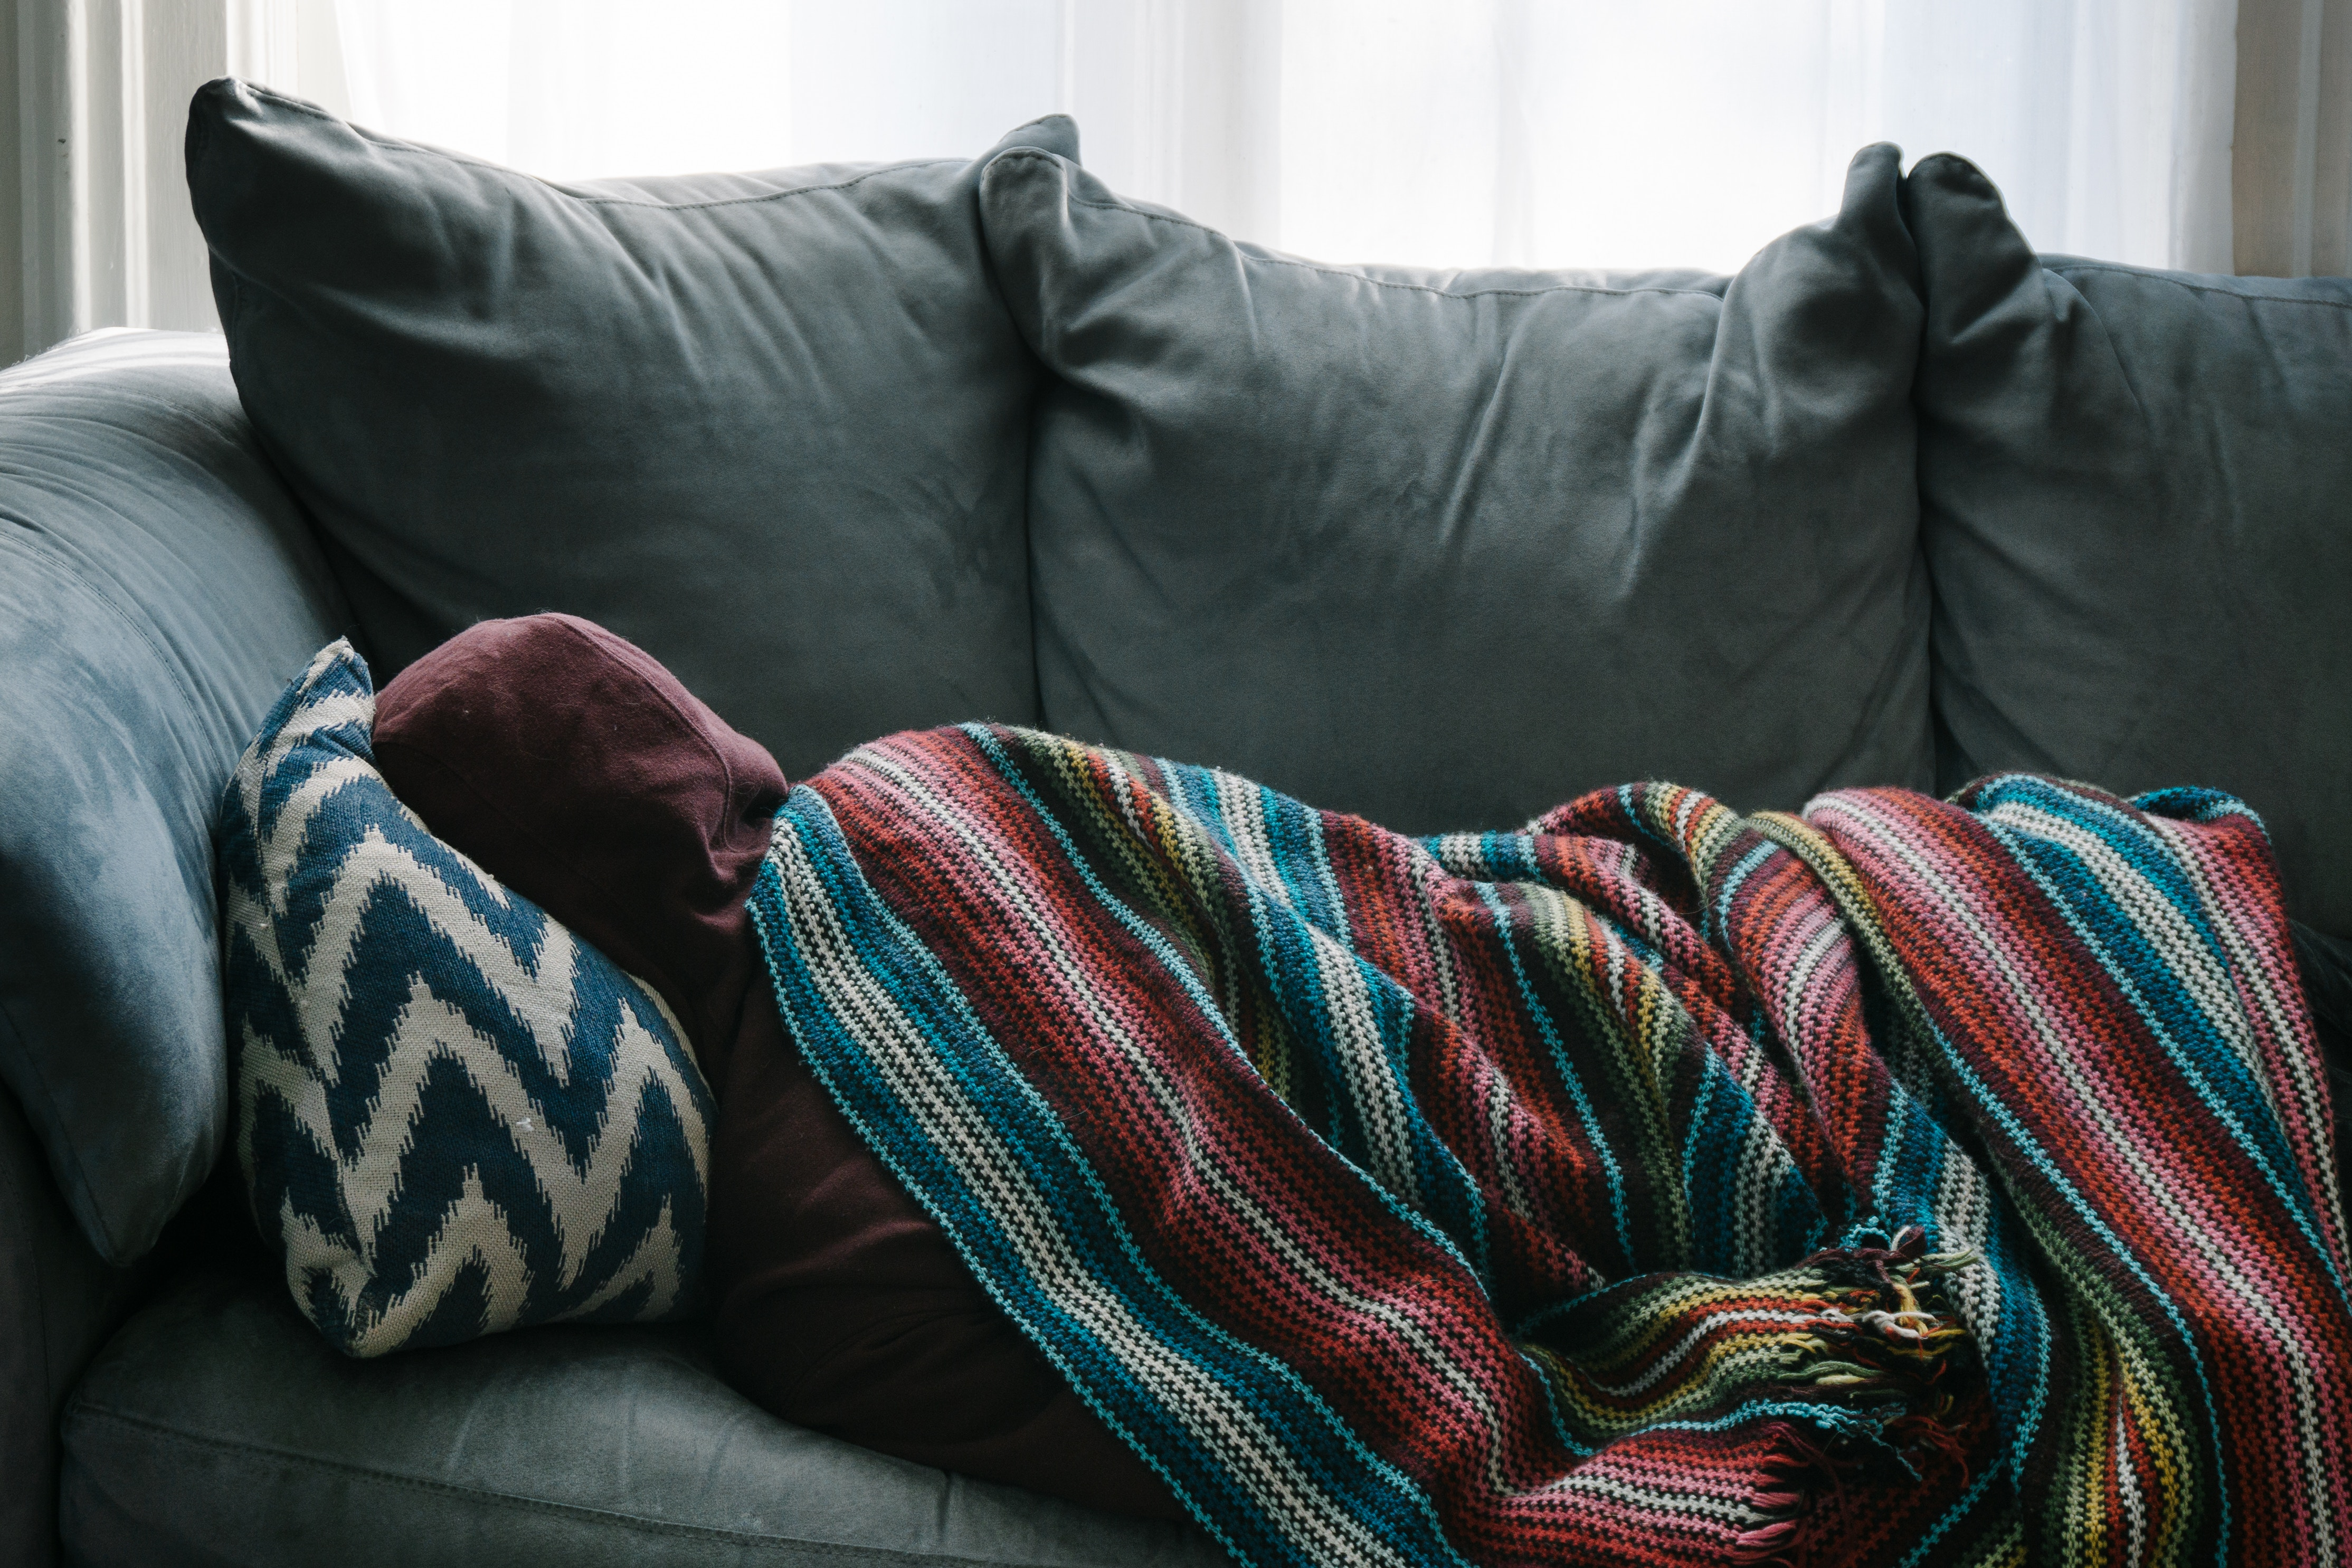 4 Strategies For Dealing With Chronic Illness